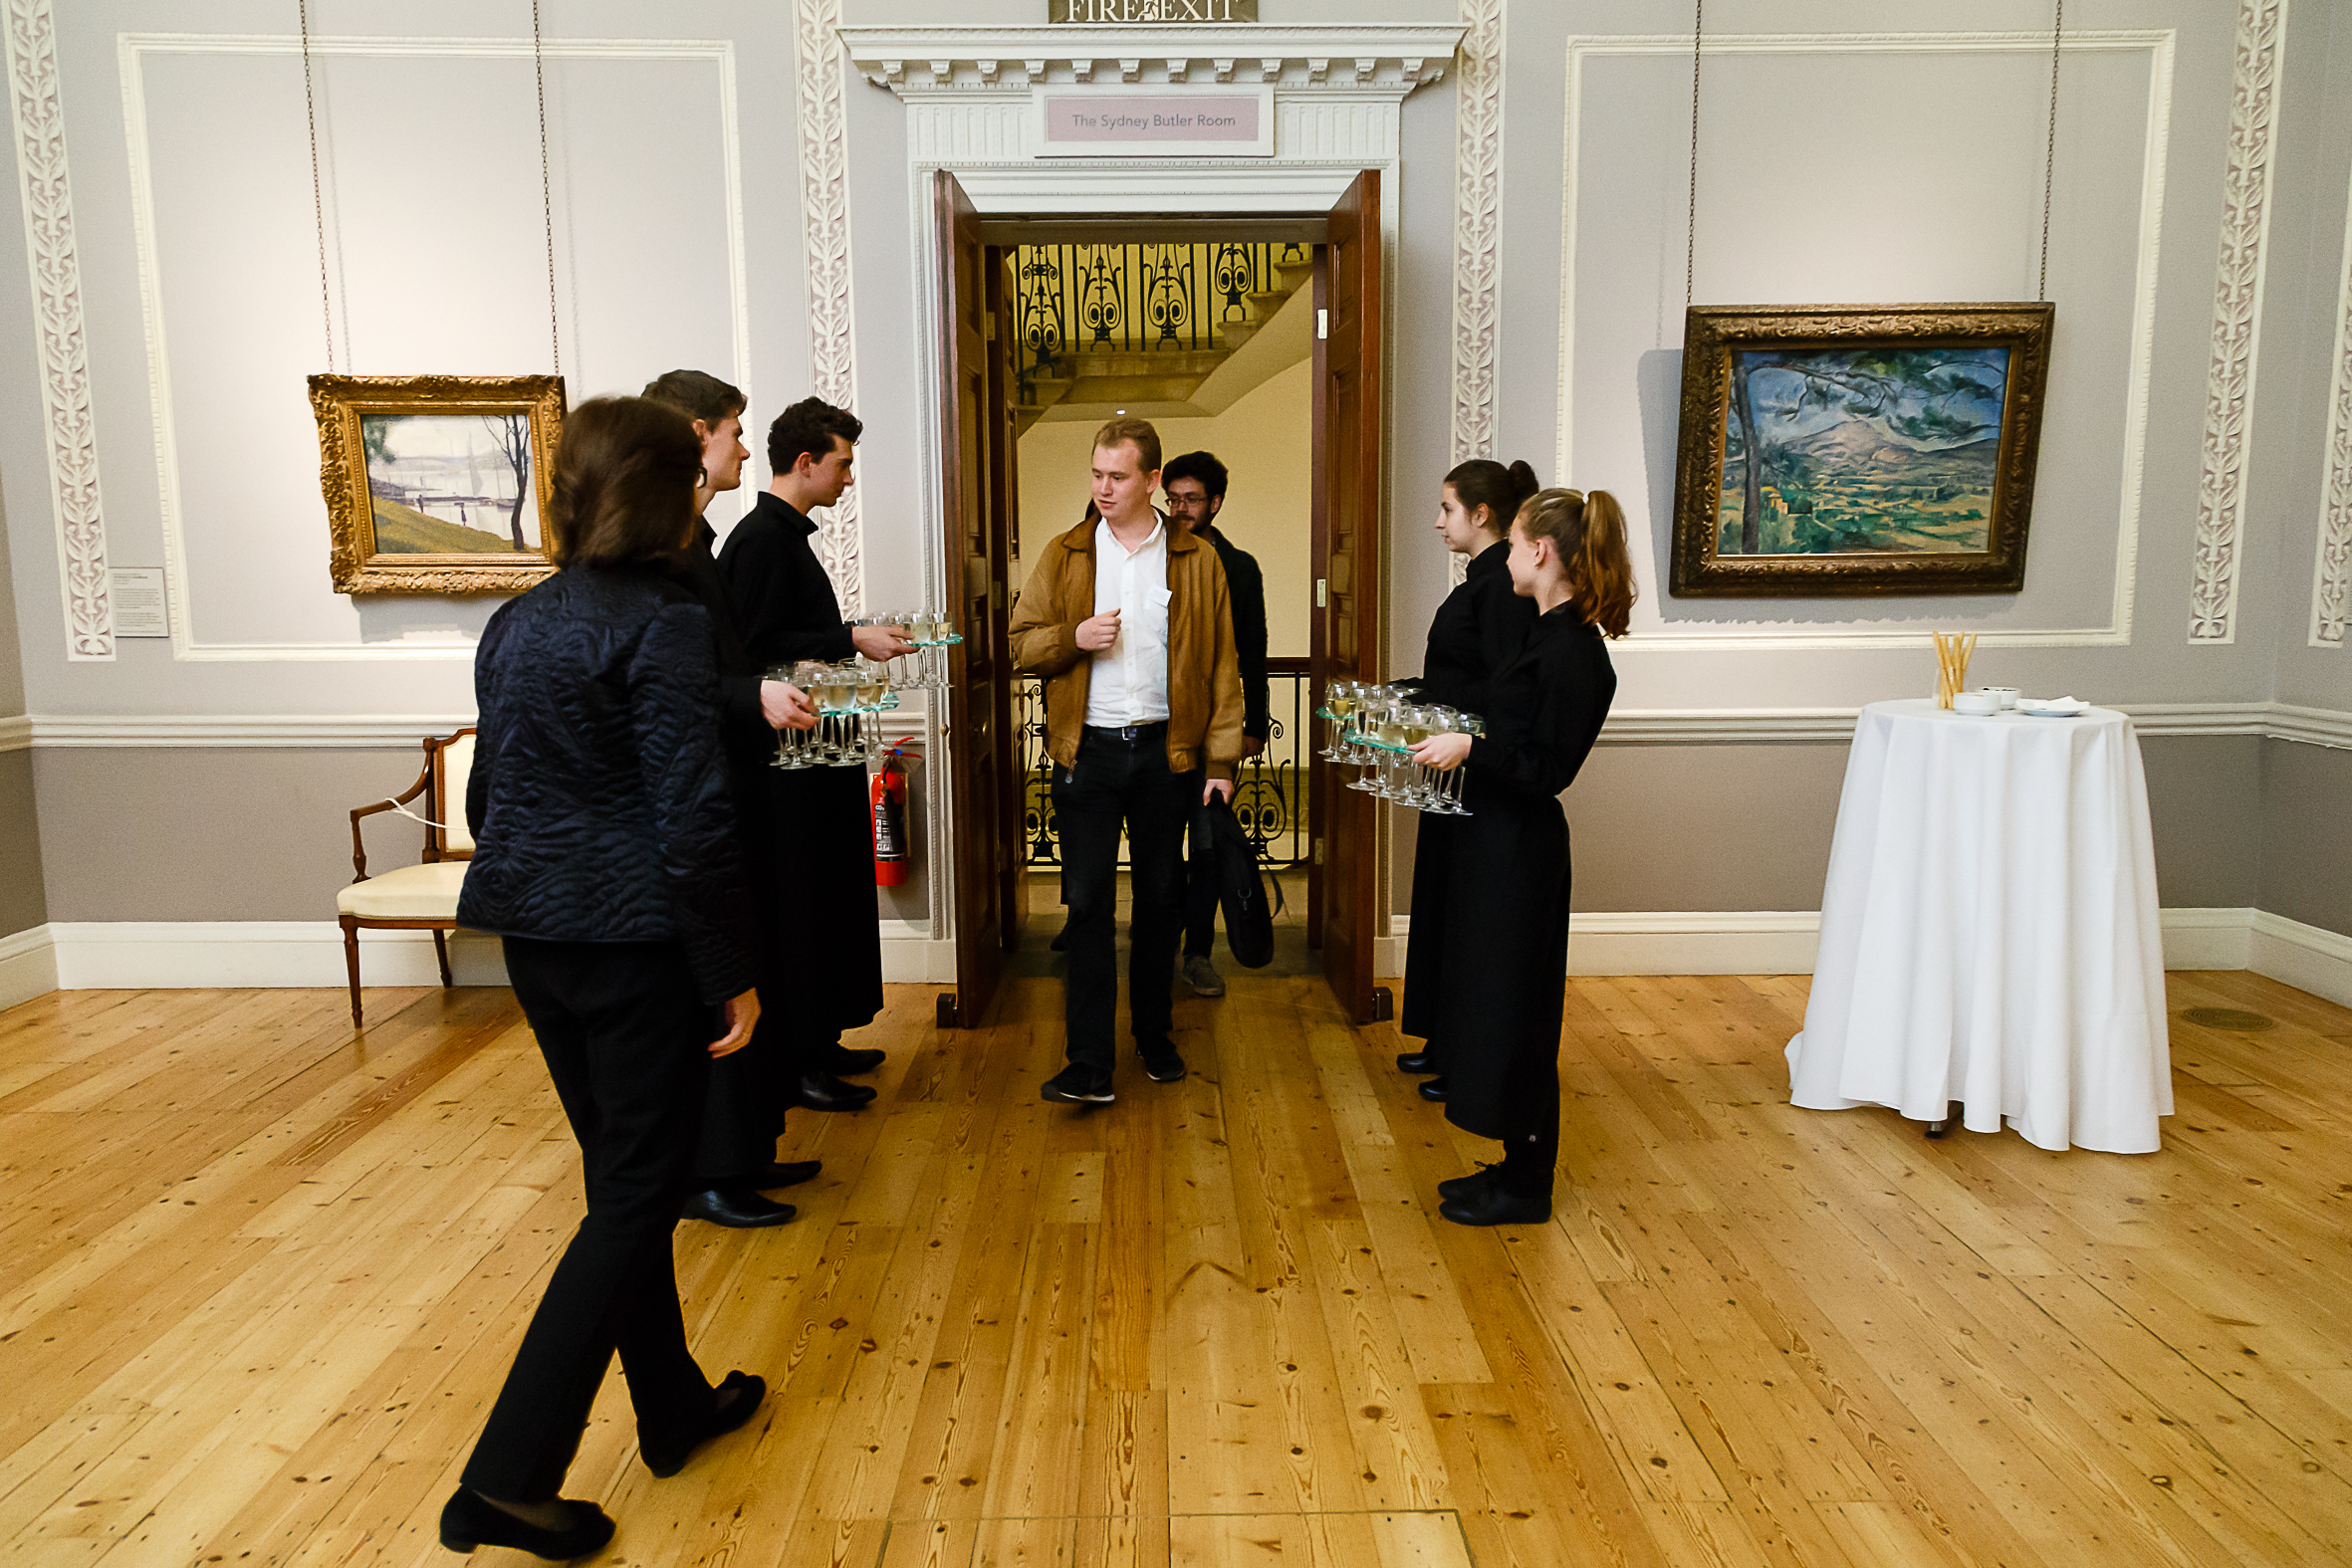 CHASE Encounters Reception in the Courtauld Gallery